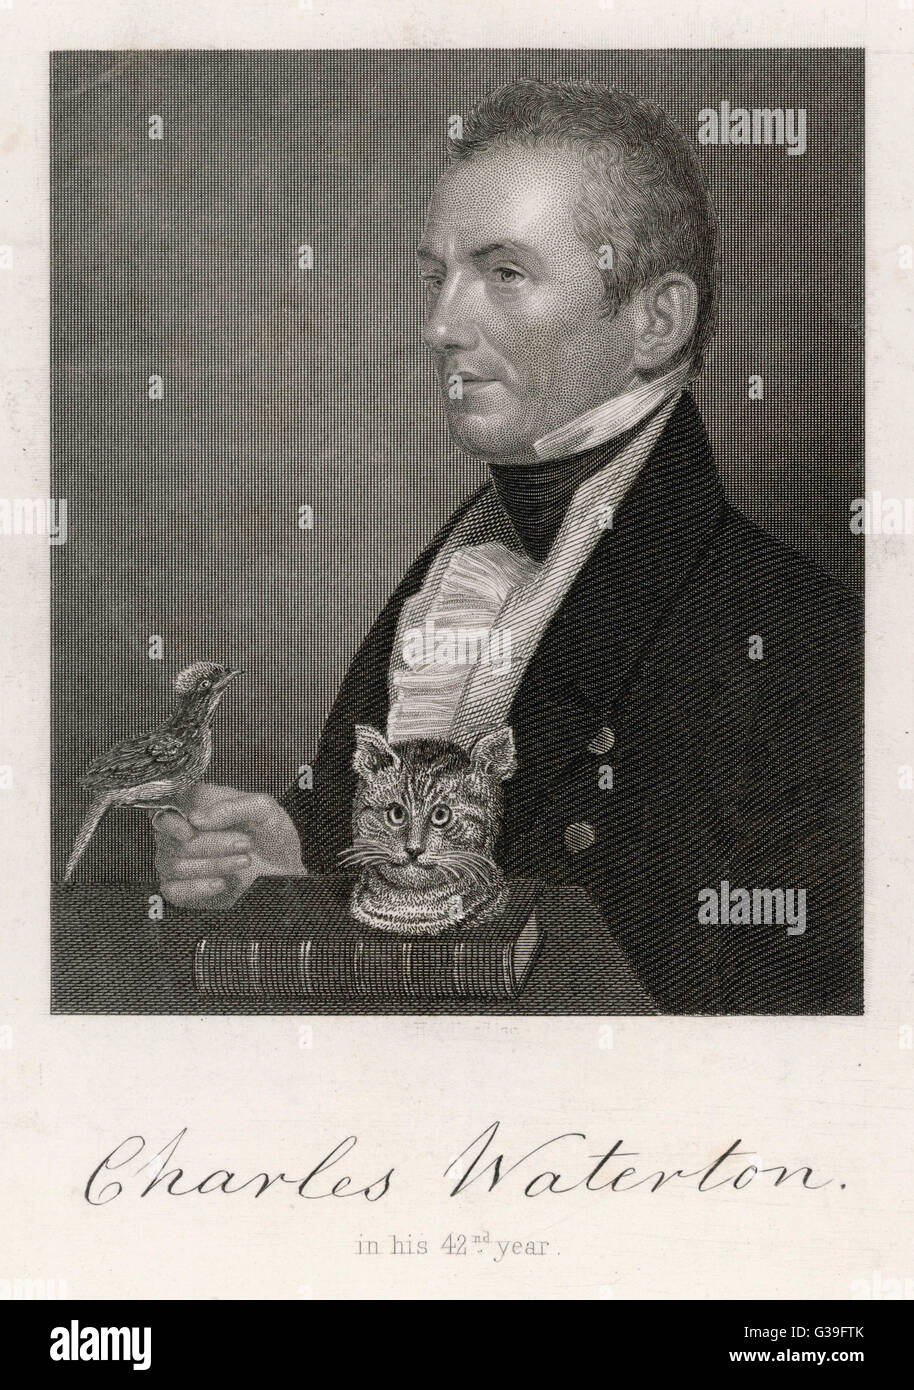 CHARLES WATERTON  naturalist, at age 42, holding a bird, with  a cat's head      Date: 1782 - 1865 - Stock Image